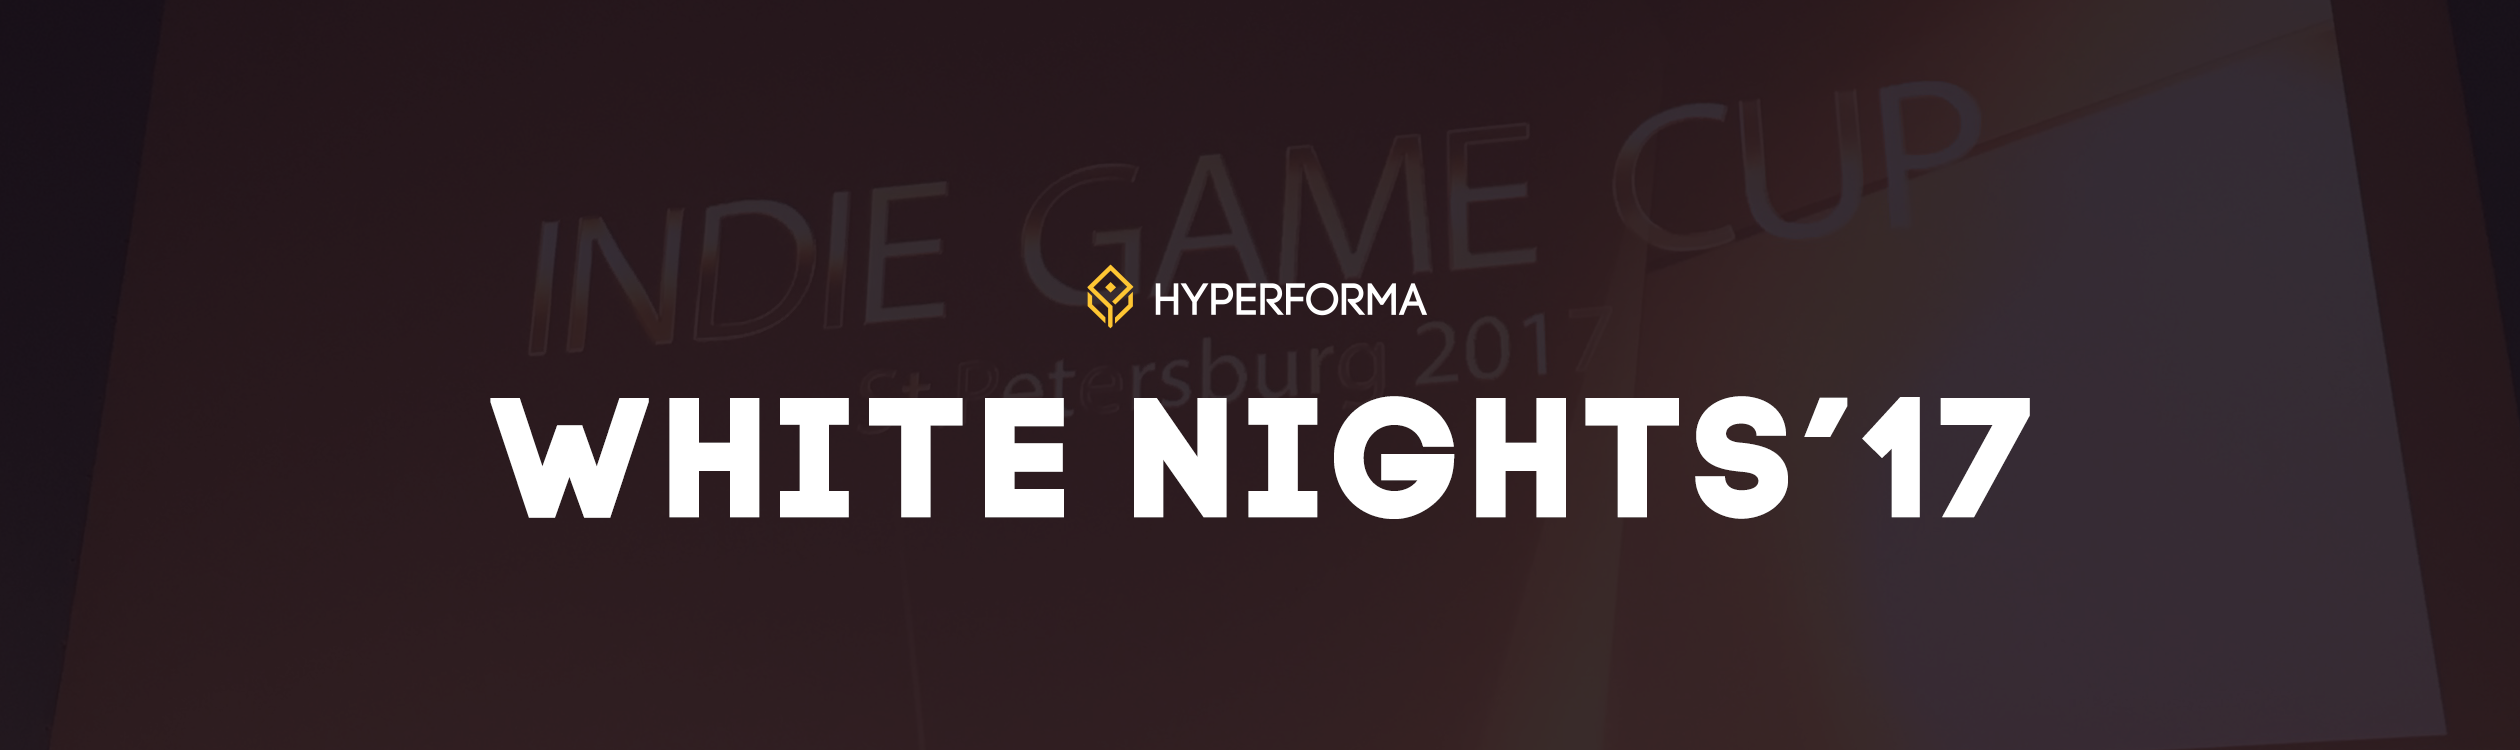 Hyperforma at White Nights 2017